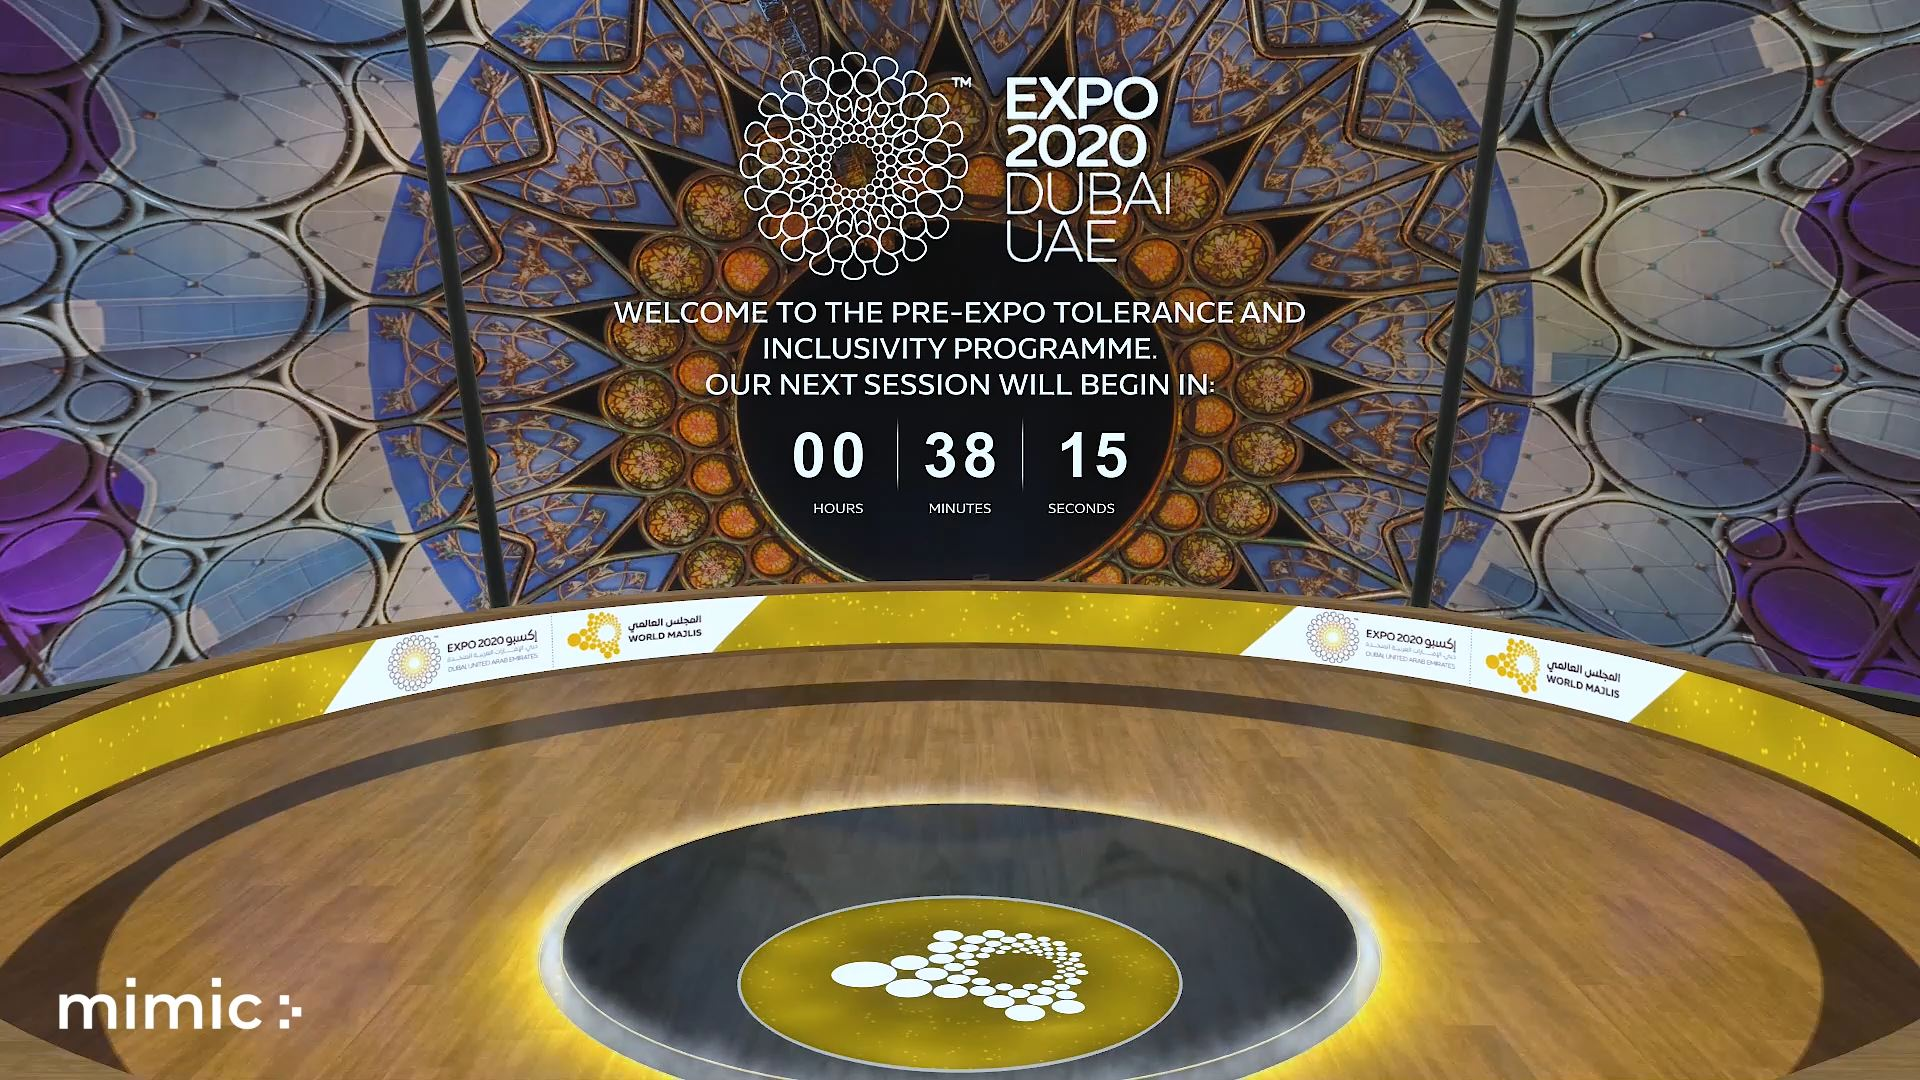 Expo 2020 Virtual event powered by mimic stage and eventagrate - main session event countdown